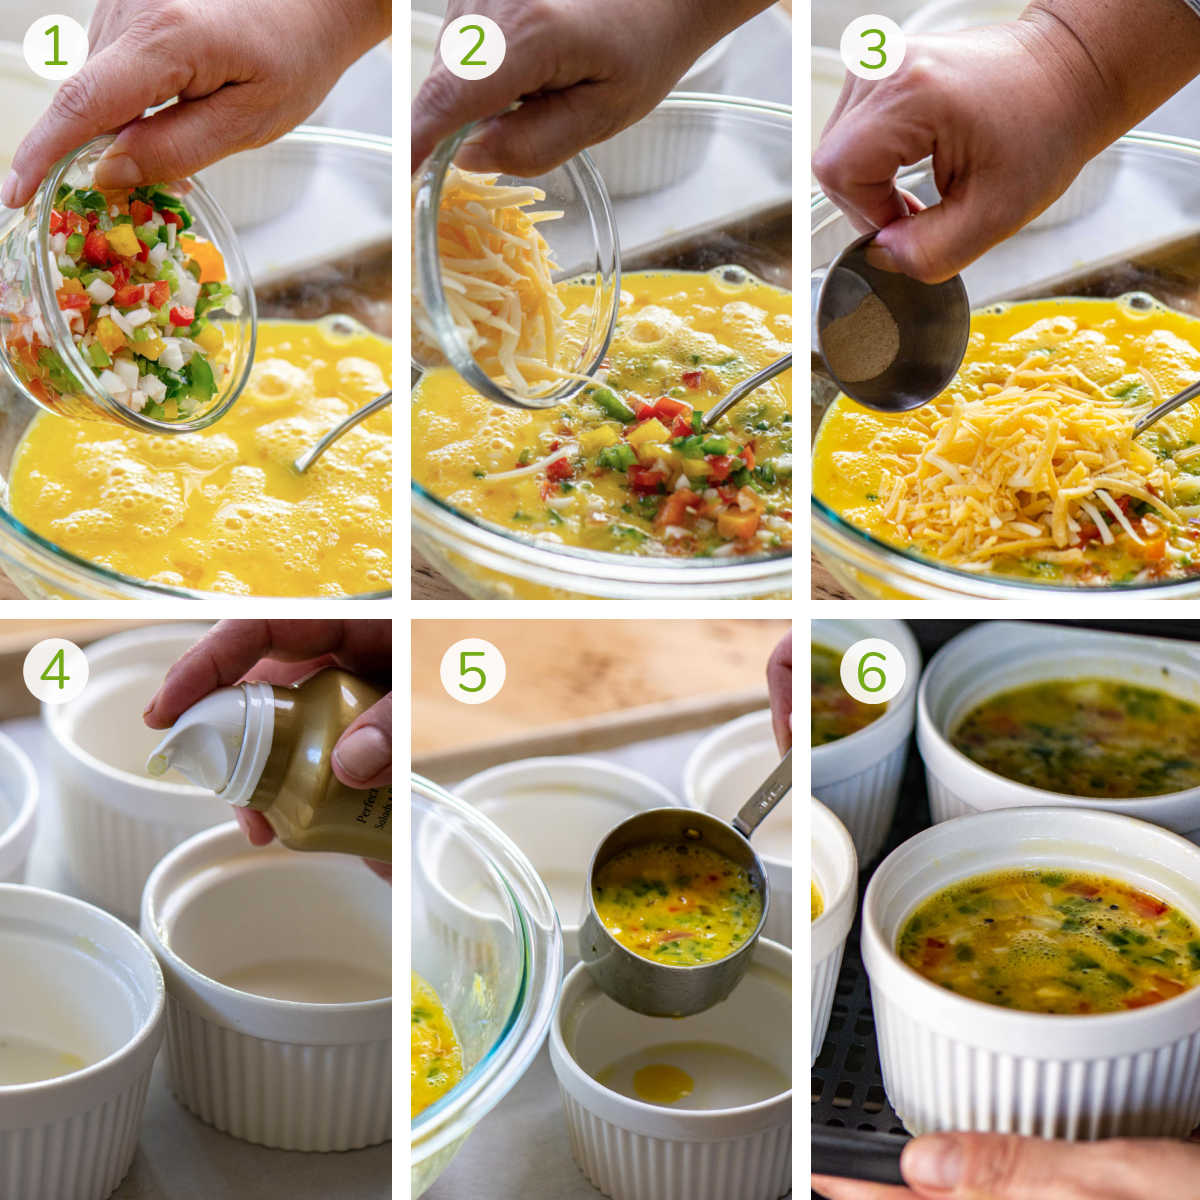 process photos showing adding the vegetables, cheese and seasoning to the egg mixture and then adding it to ramekins for the air fryer.